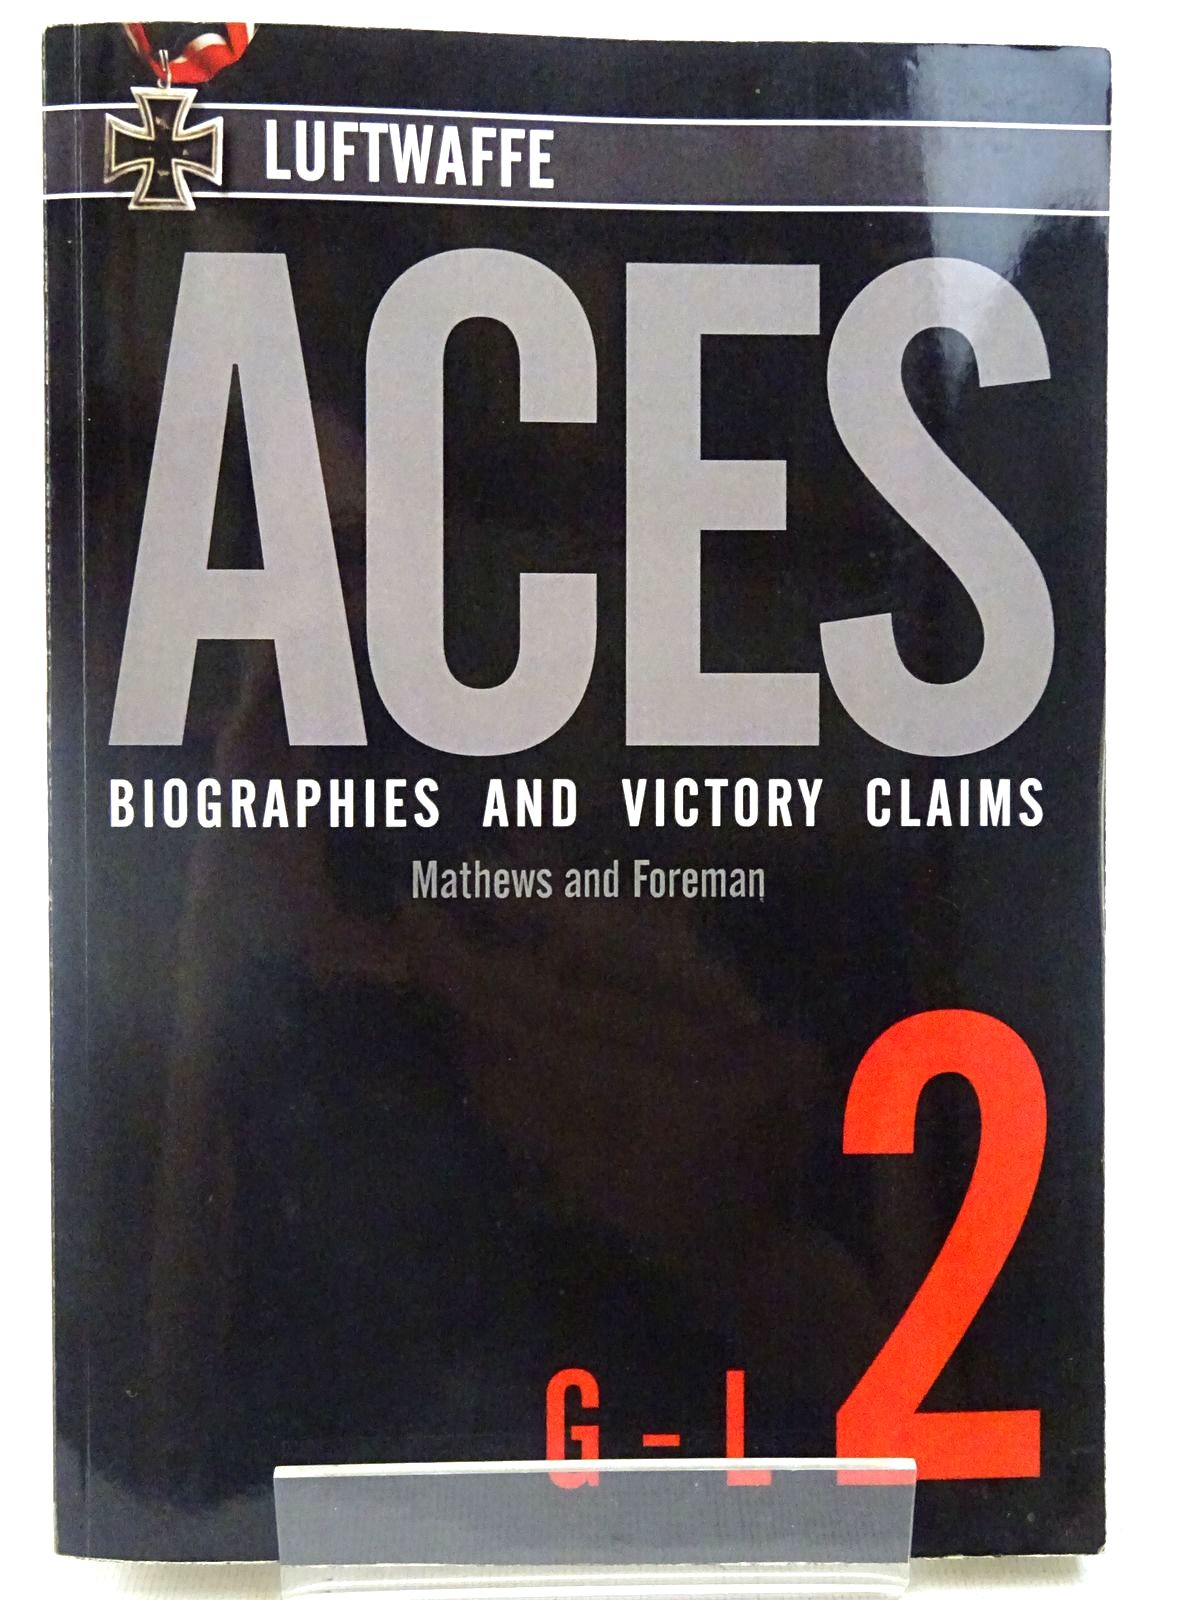 Photo of LUFTWAFFE ACES BIOGRAPHIES AND VICTORY CLAIMS VOLUME 2 G - L written by Matthews, Andrew Johannes<br />Foreman, John published by Red Kite (STOCK CODE: 2127964)  for sale by Stella & Rose's Books